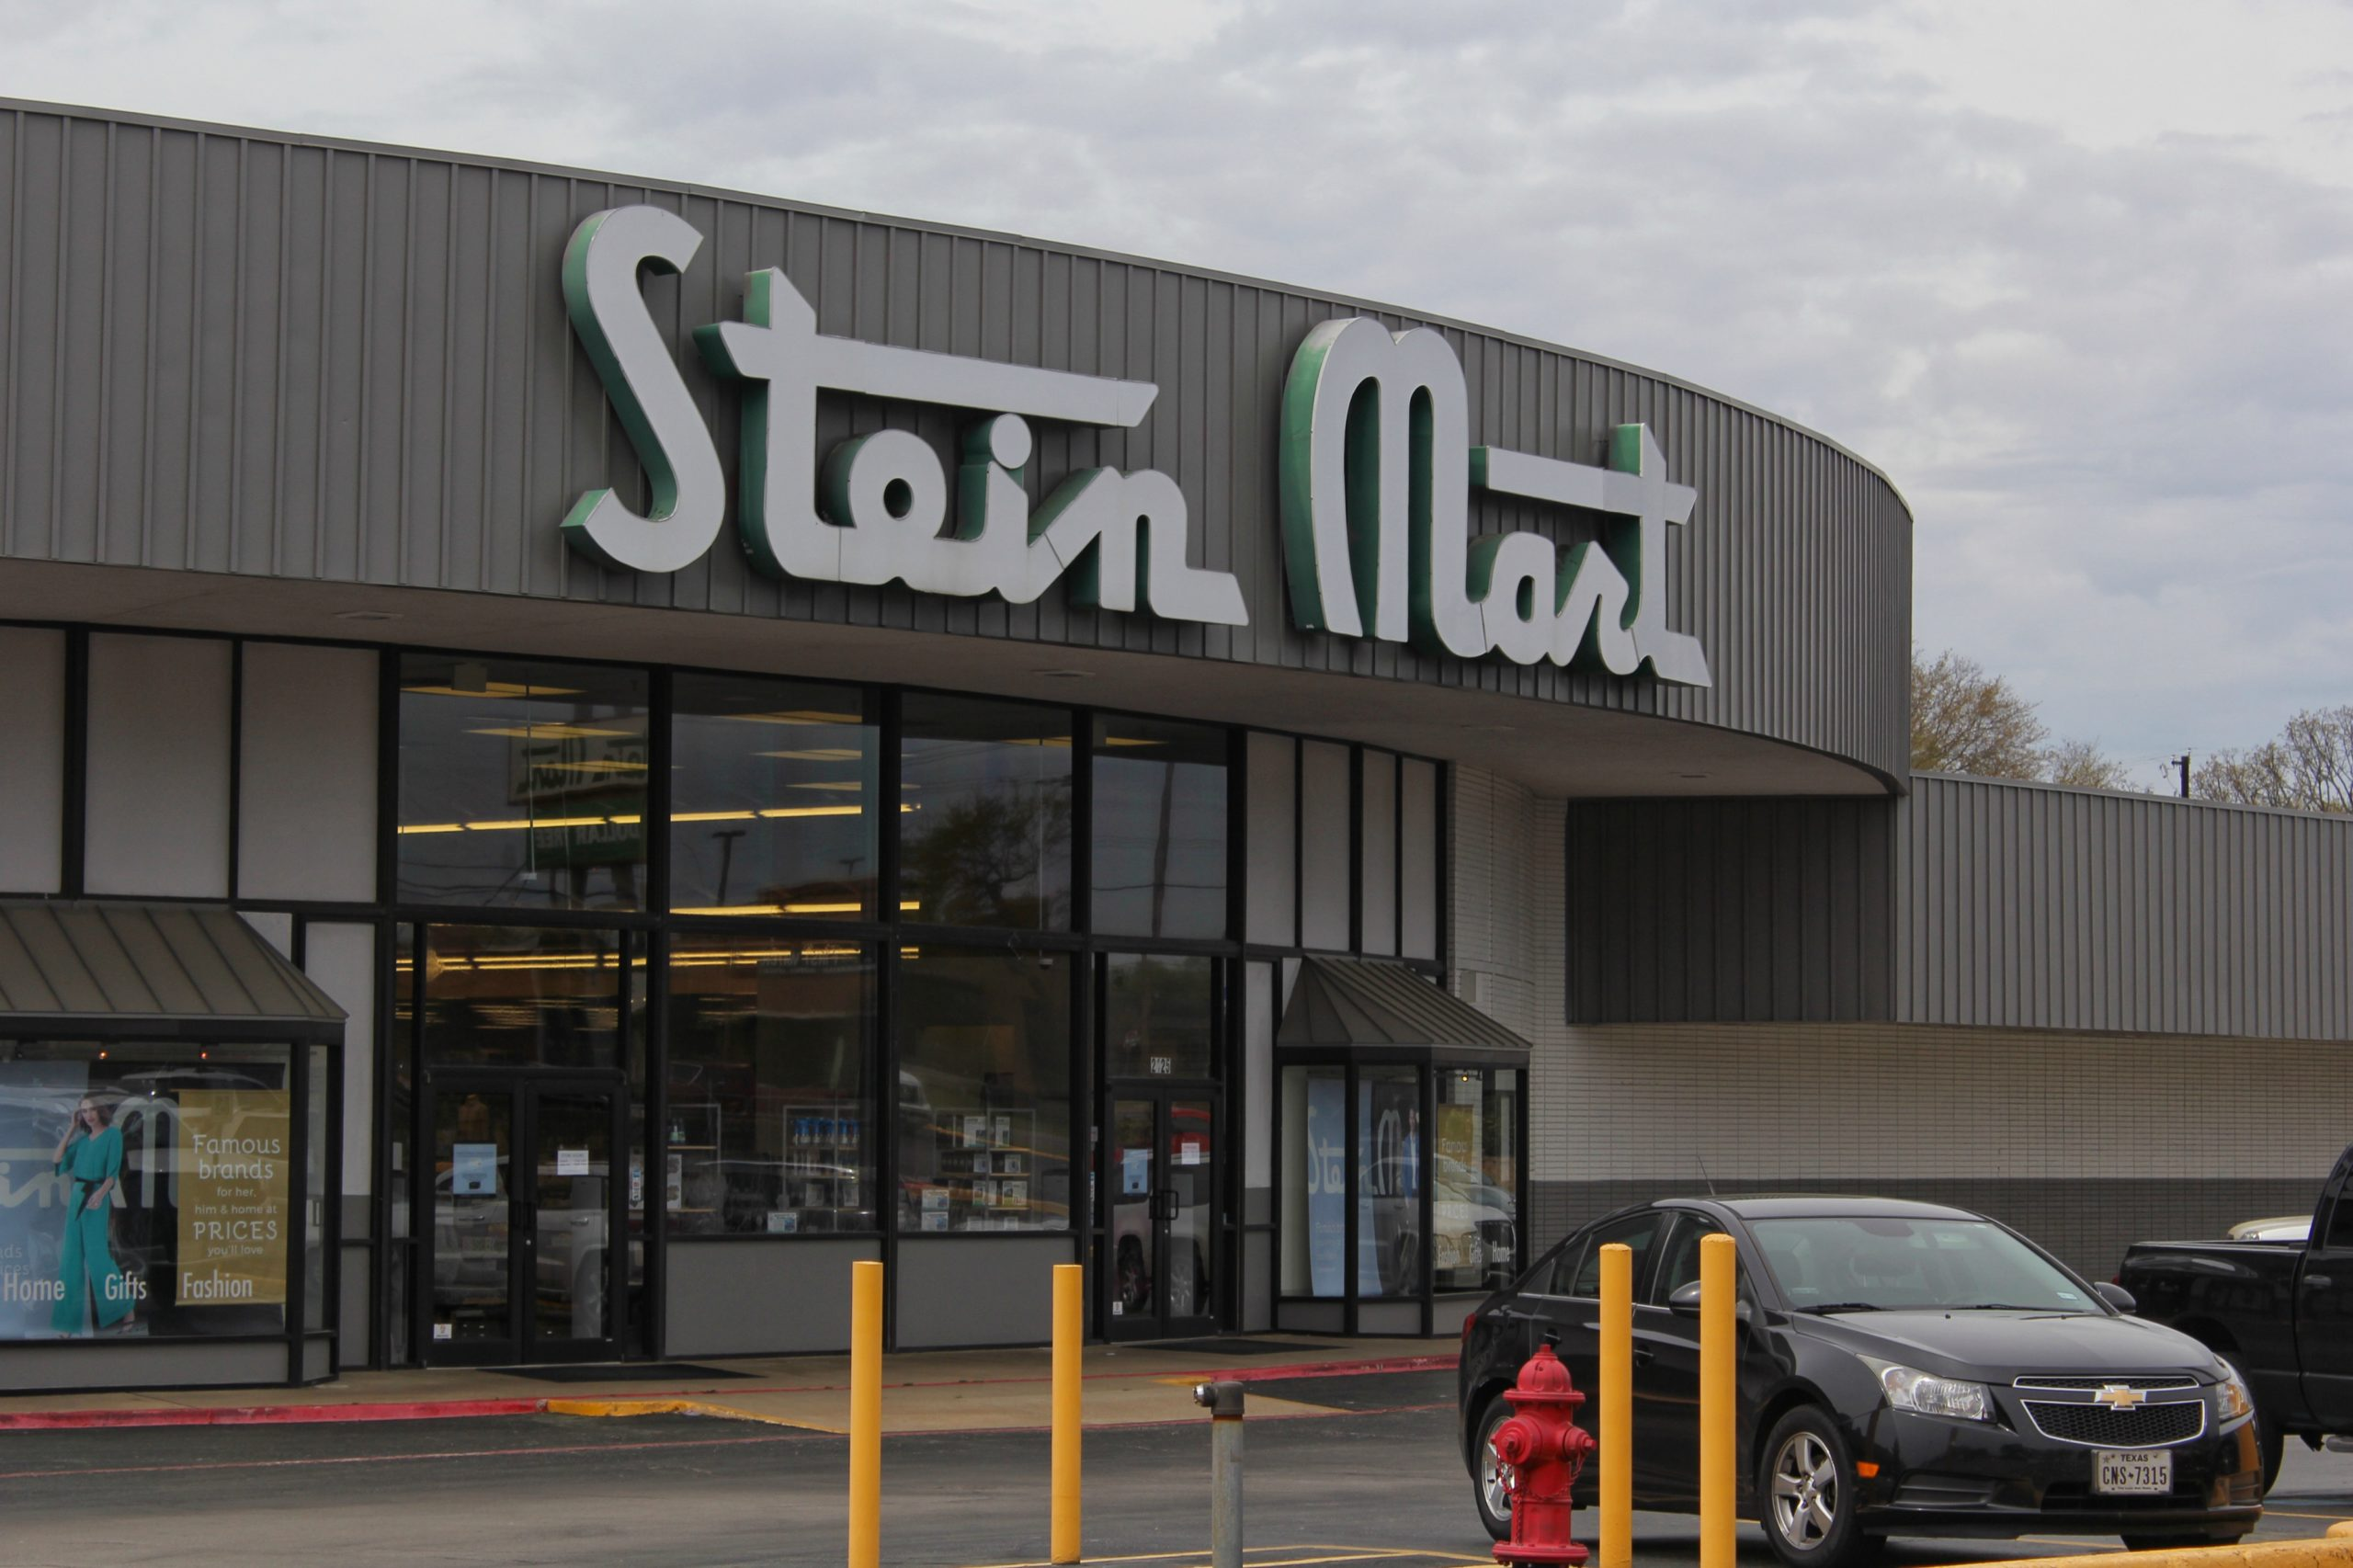 Off-price chain Stein Mart is the latest retail nameplate to be added to the list of distressed merchants that could end up bankrupt.